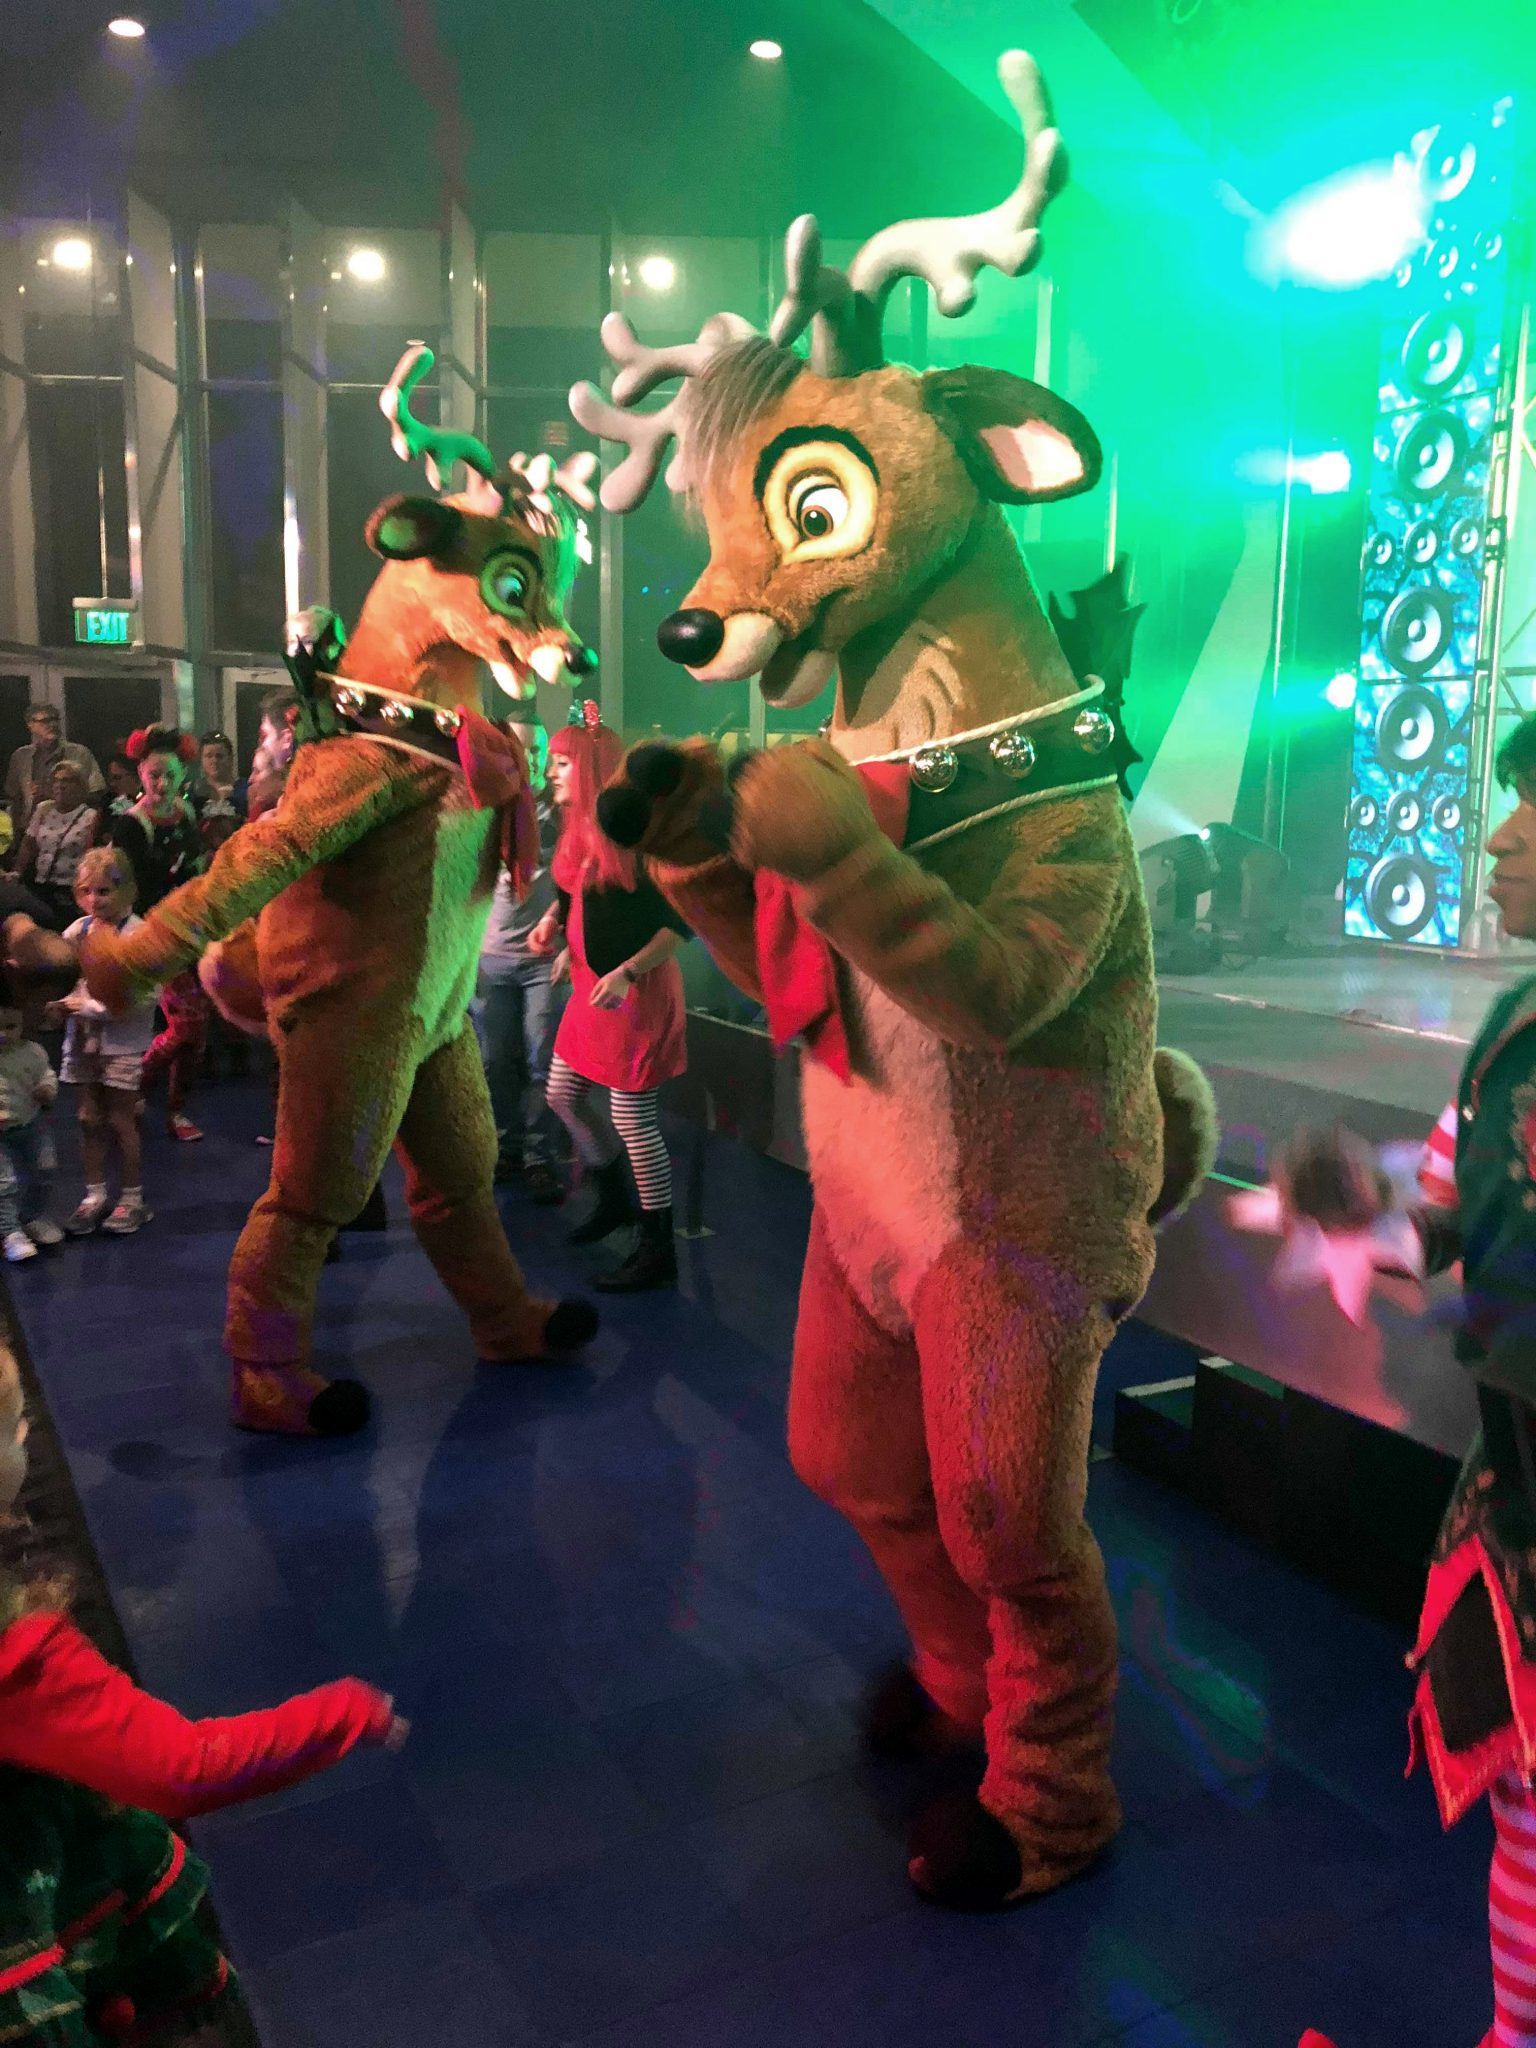 Dance the night away at Club Tinsel during Mickey's Very Merry Christmas Party.